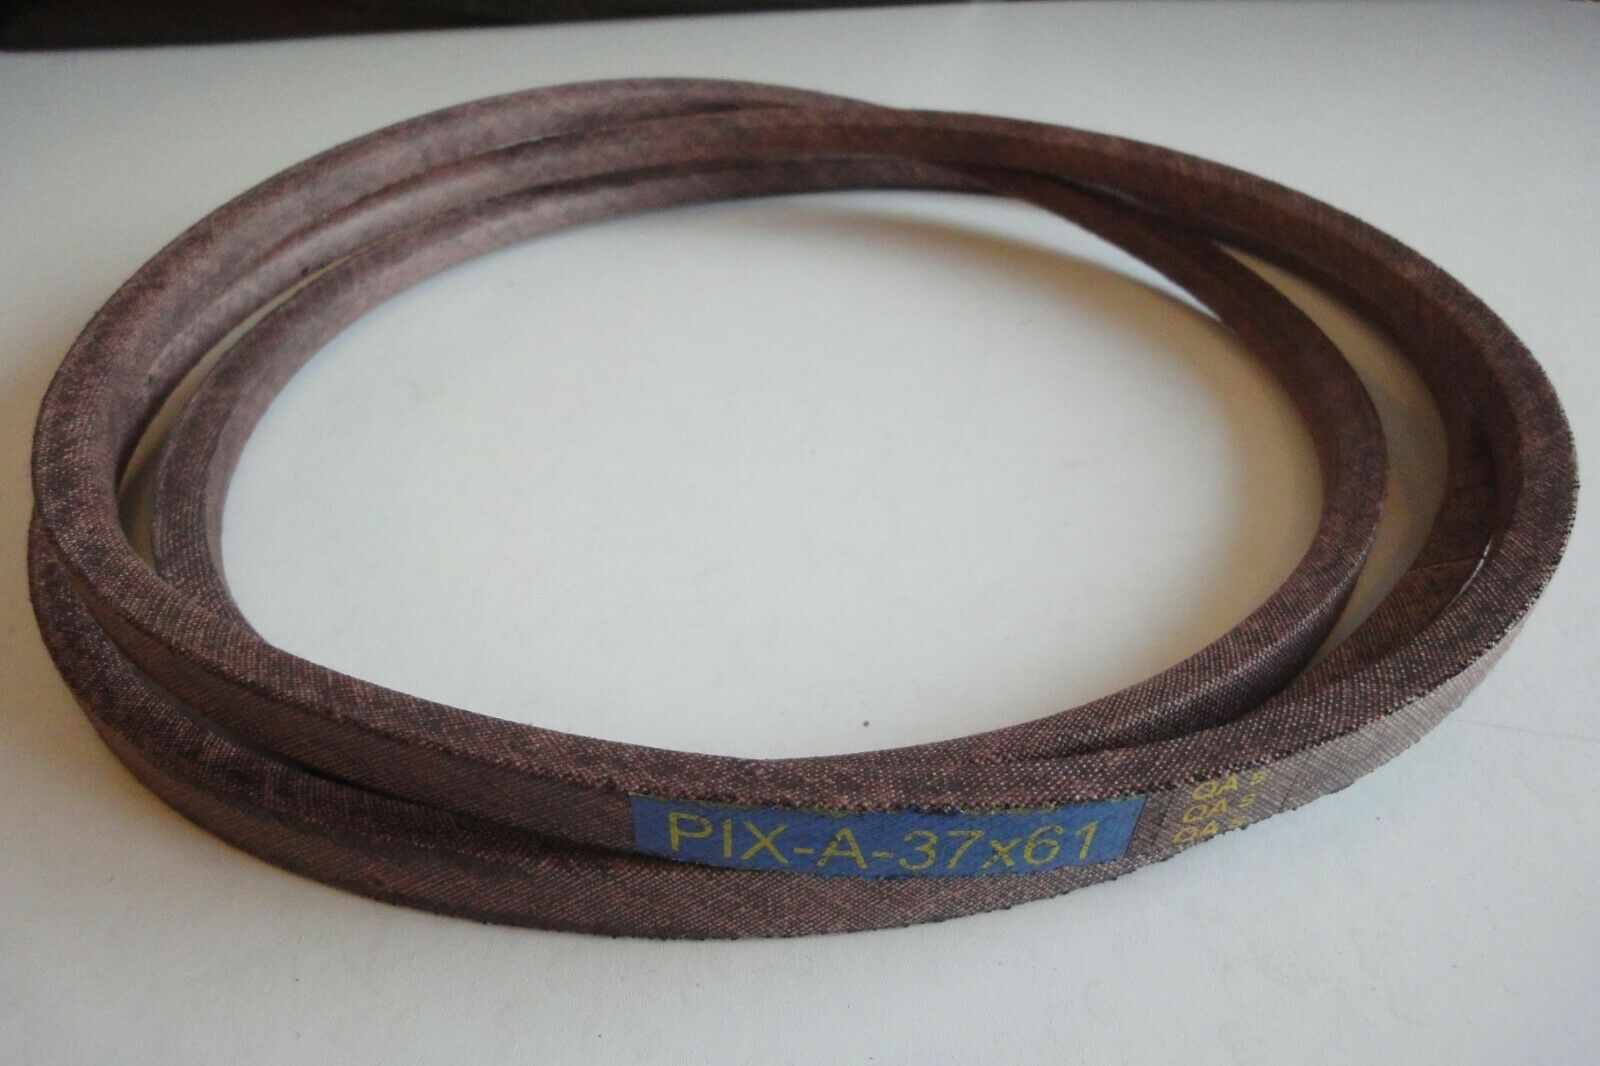 "MURRAY 37 x 61 Pix Replacement Motion Drive belt 38&#39"" 40"", 42"